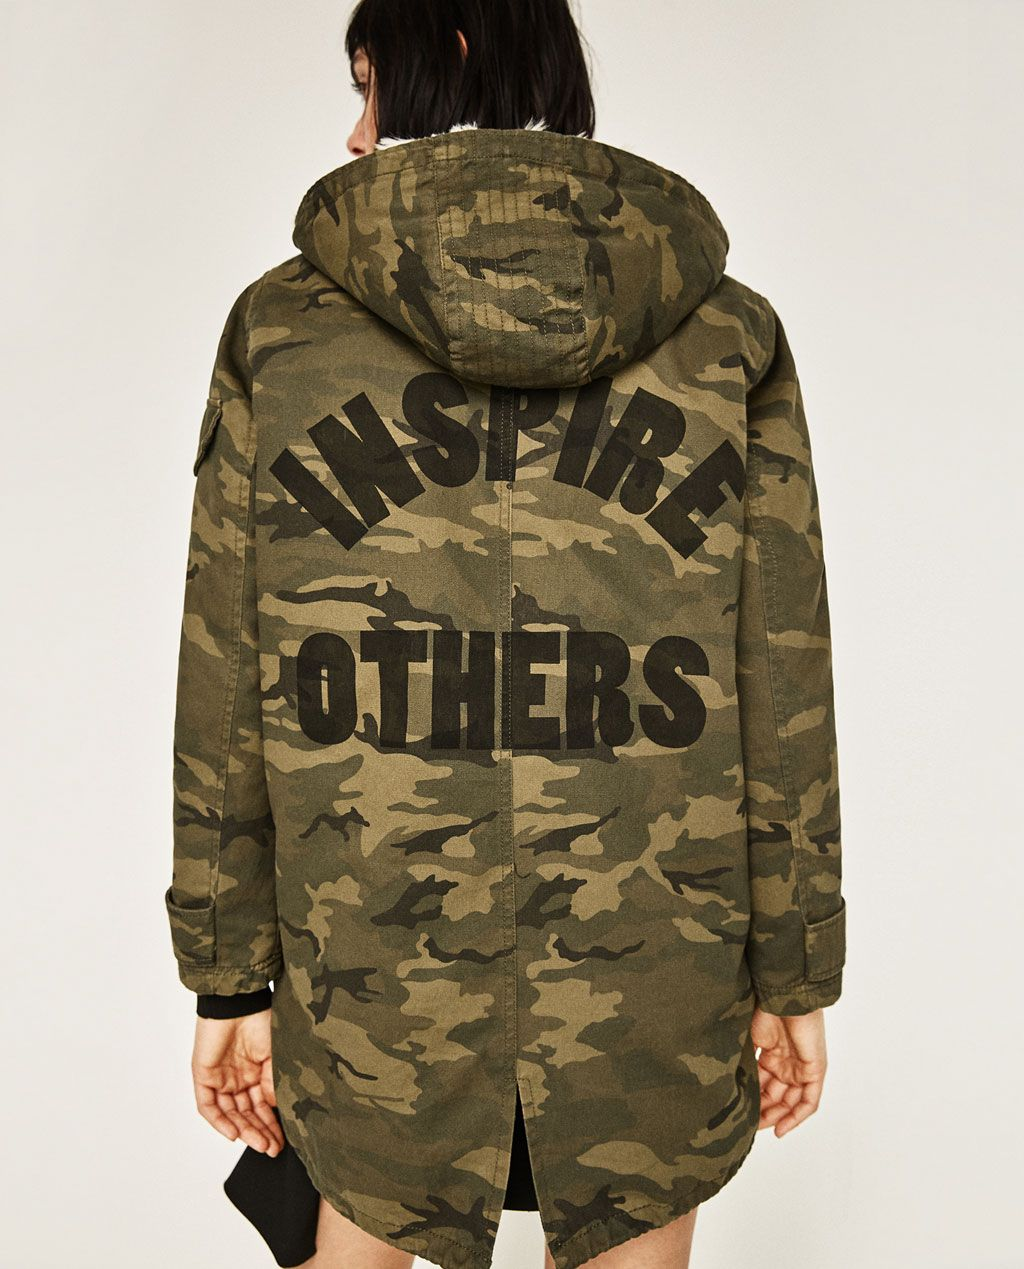 e80fa923 ZARA - WOMAN - CAMOUFLAGE PARKA do not like the writing on the back ...